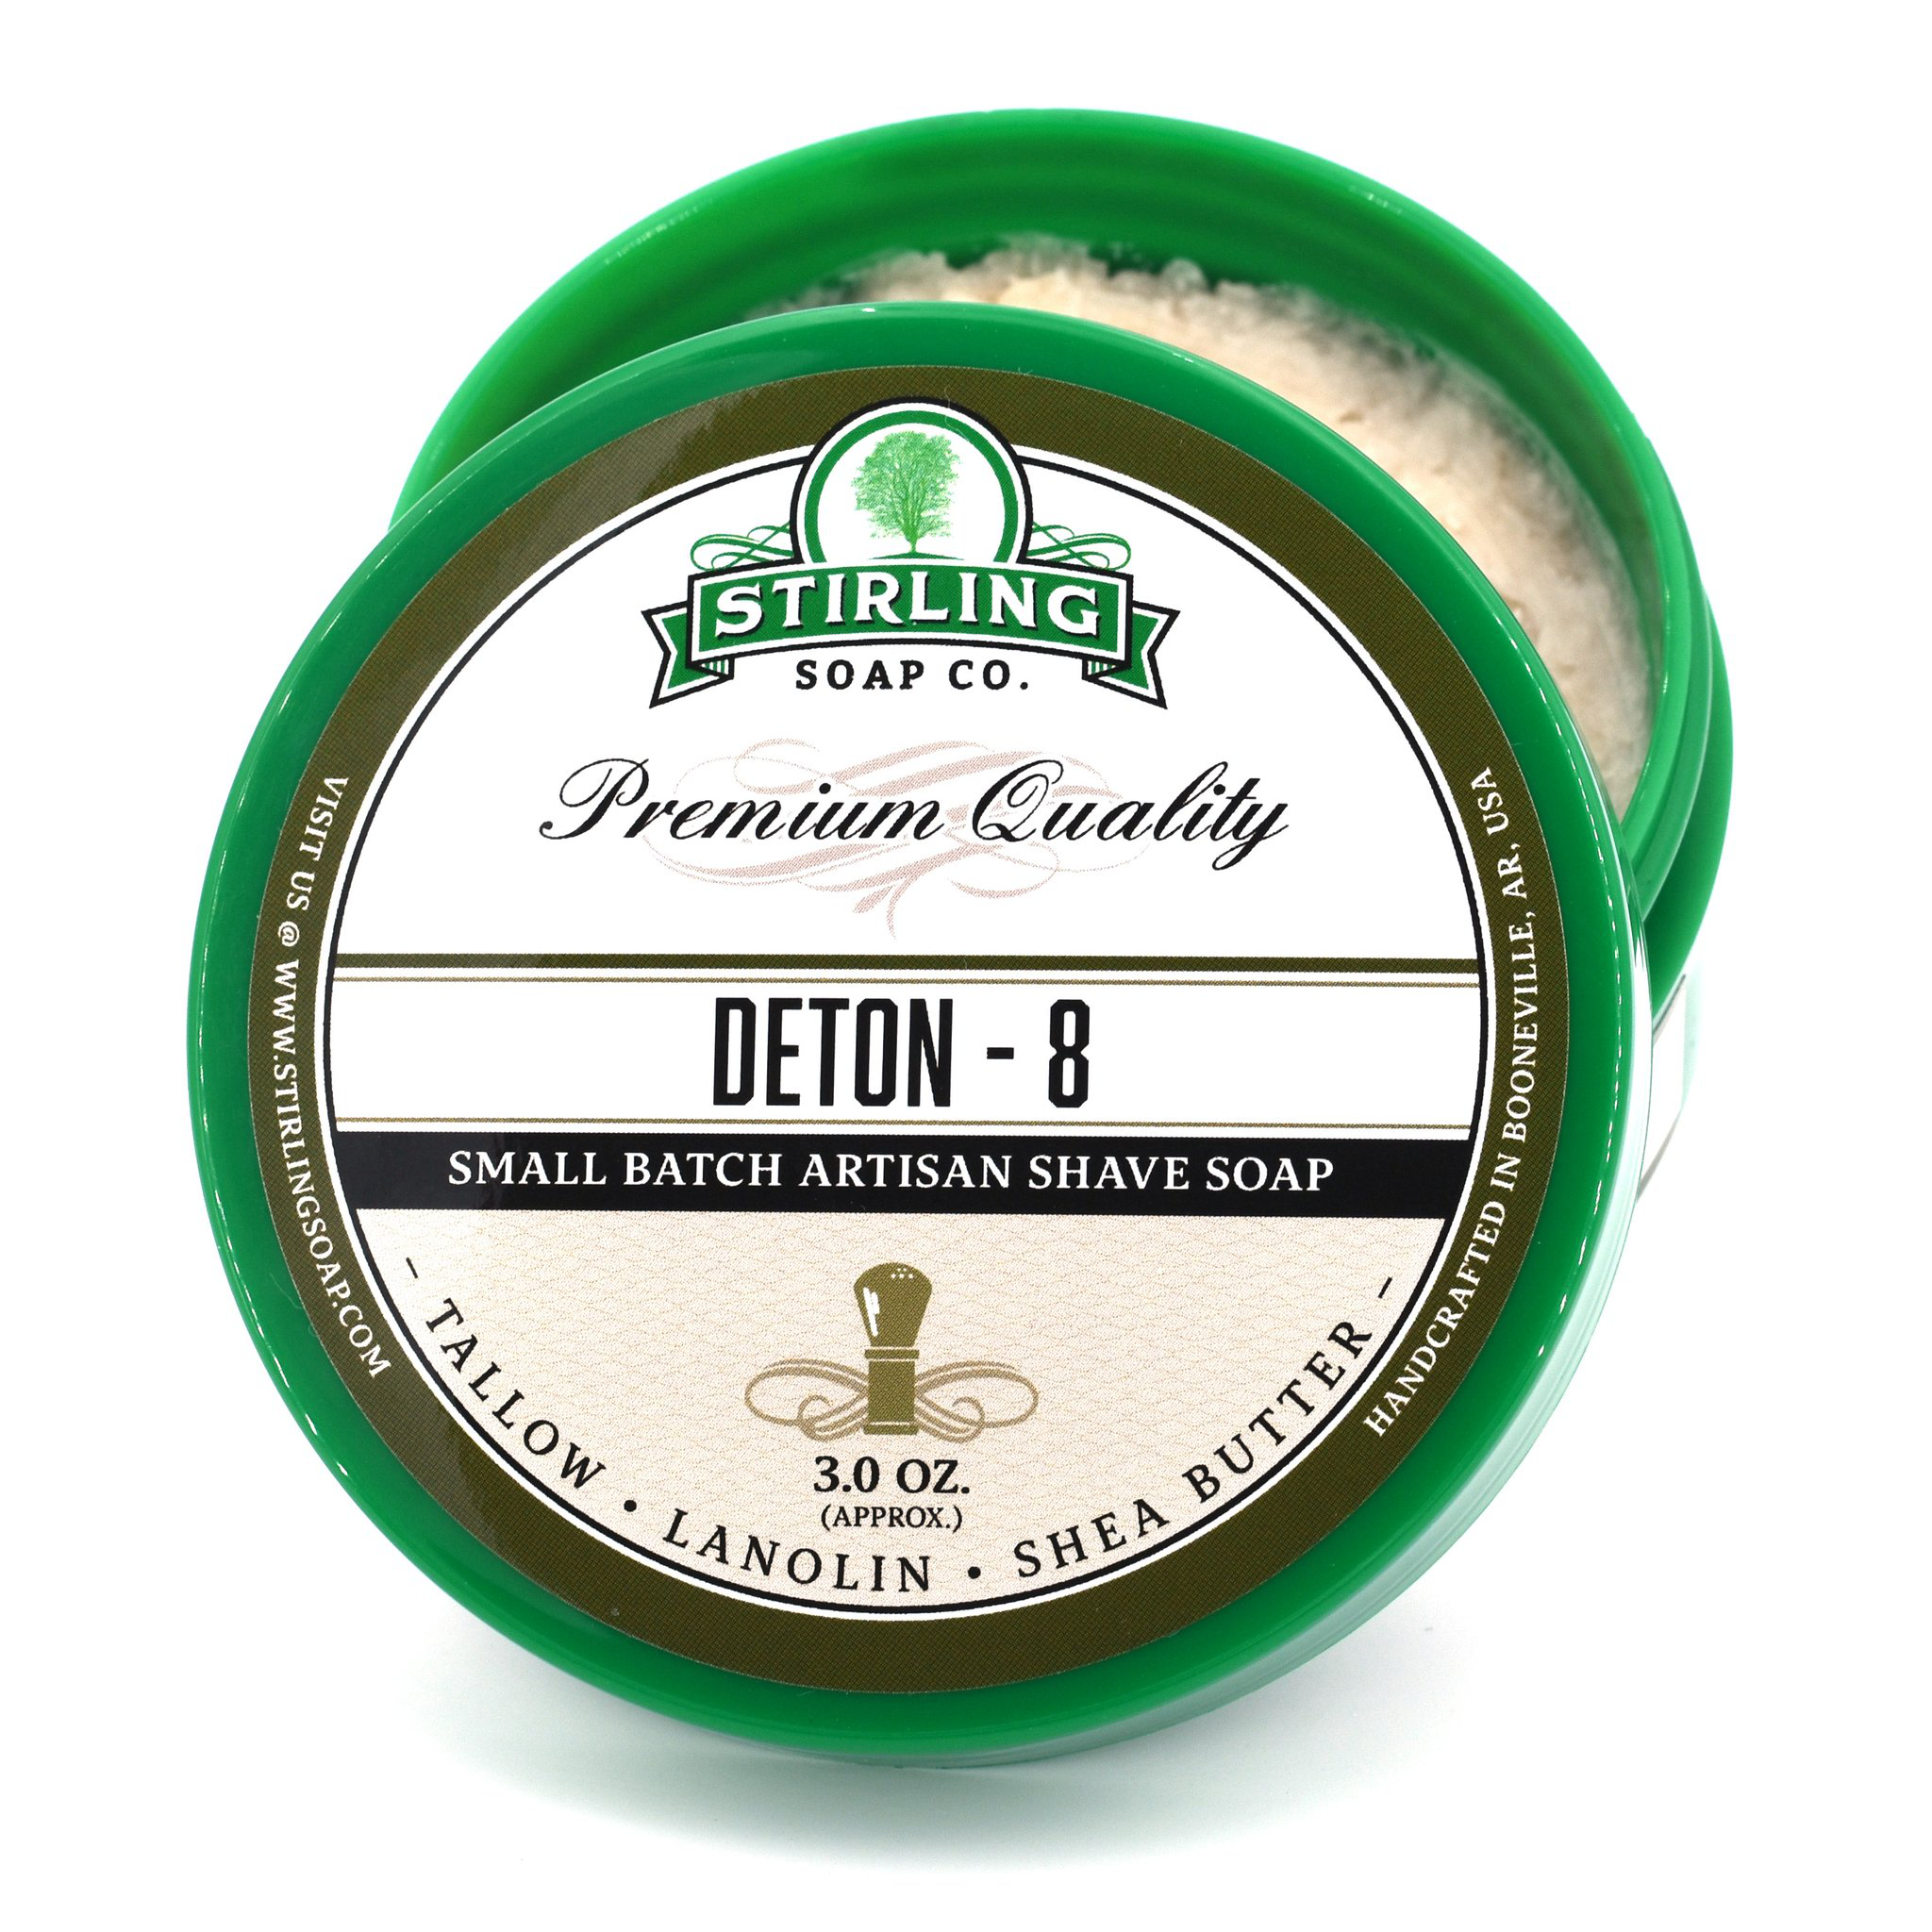 Stirling Soap Co. - Deton-8 - Soap image